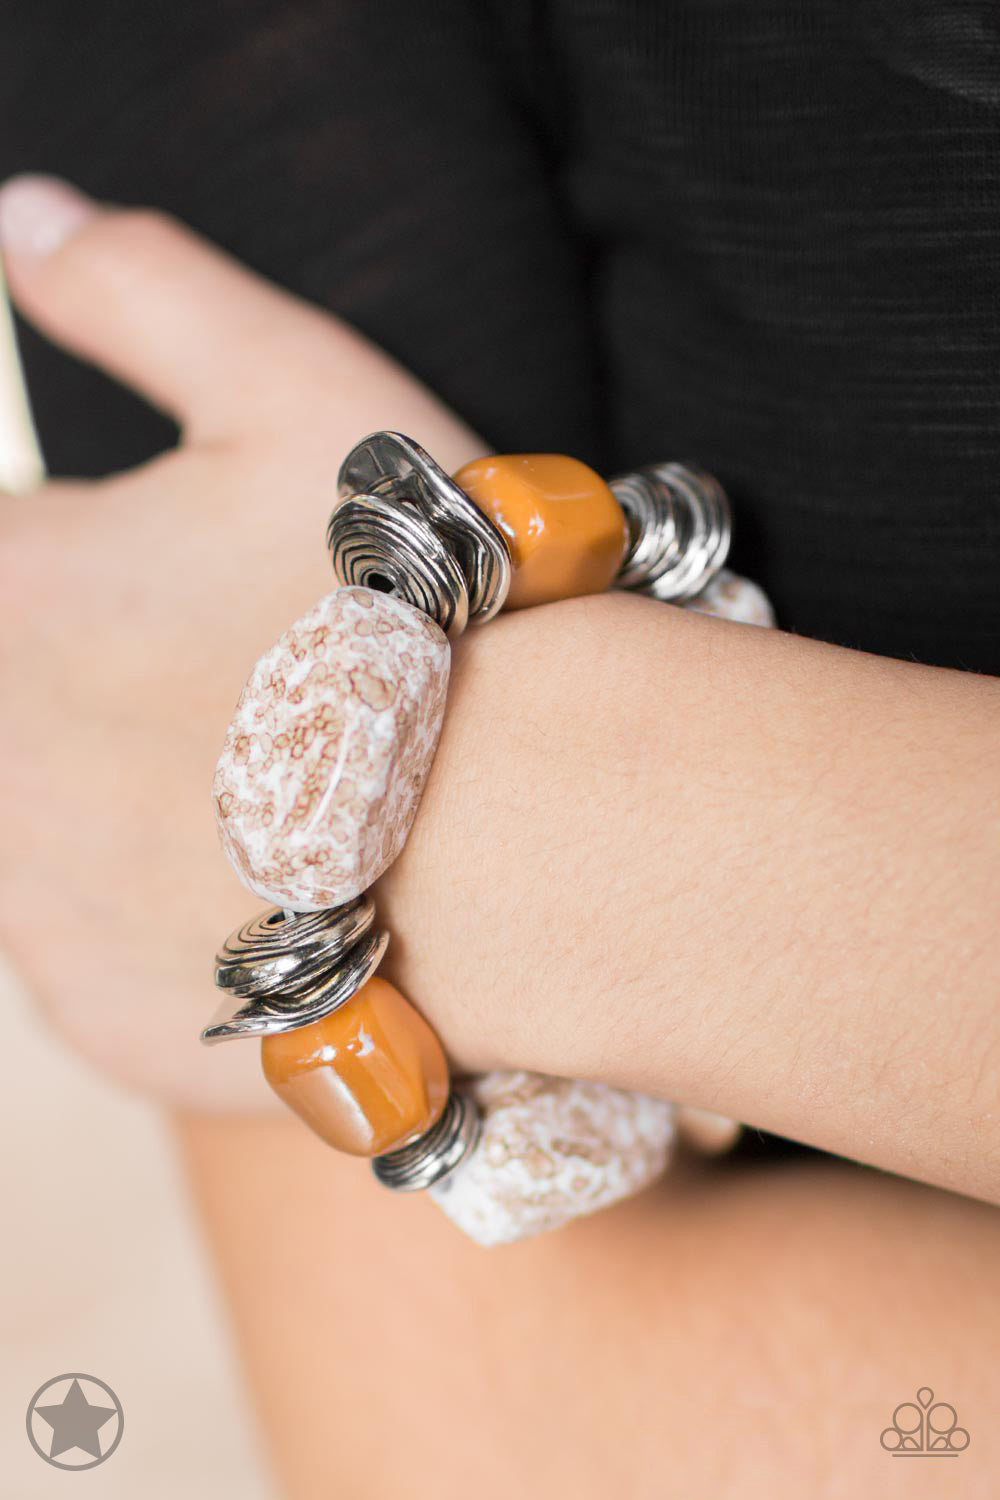 Glaze of Glory - Peach Blockbuster Bracelet